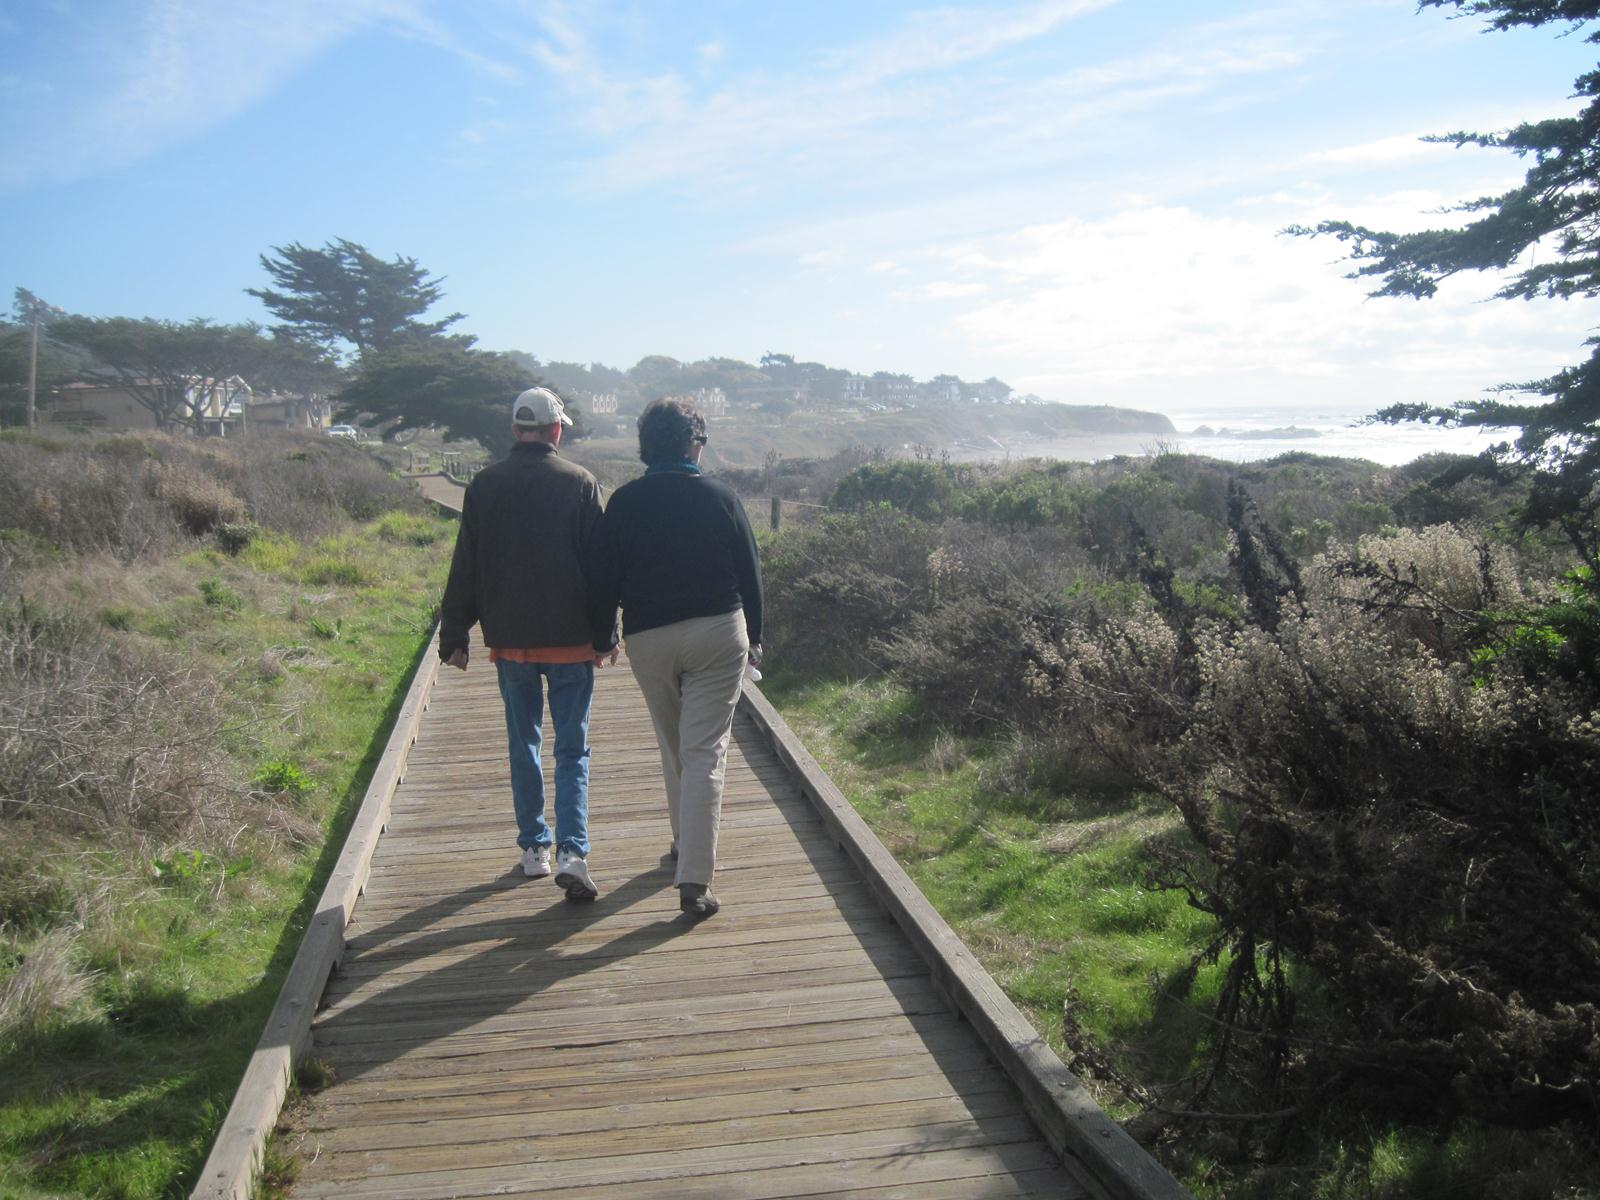 November 2011 - Middle stage dementia, but still enjoying the walk.